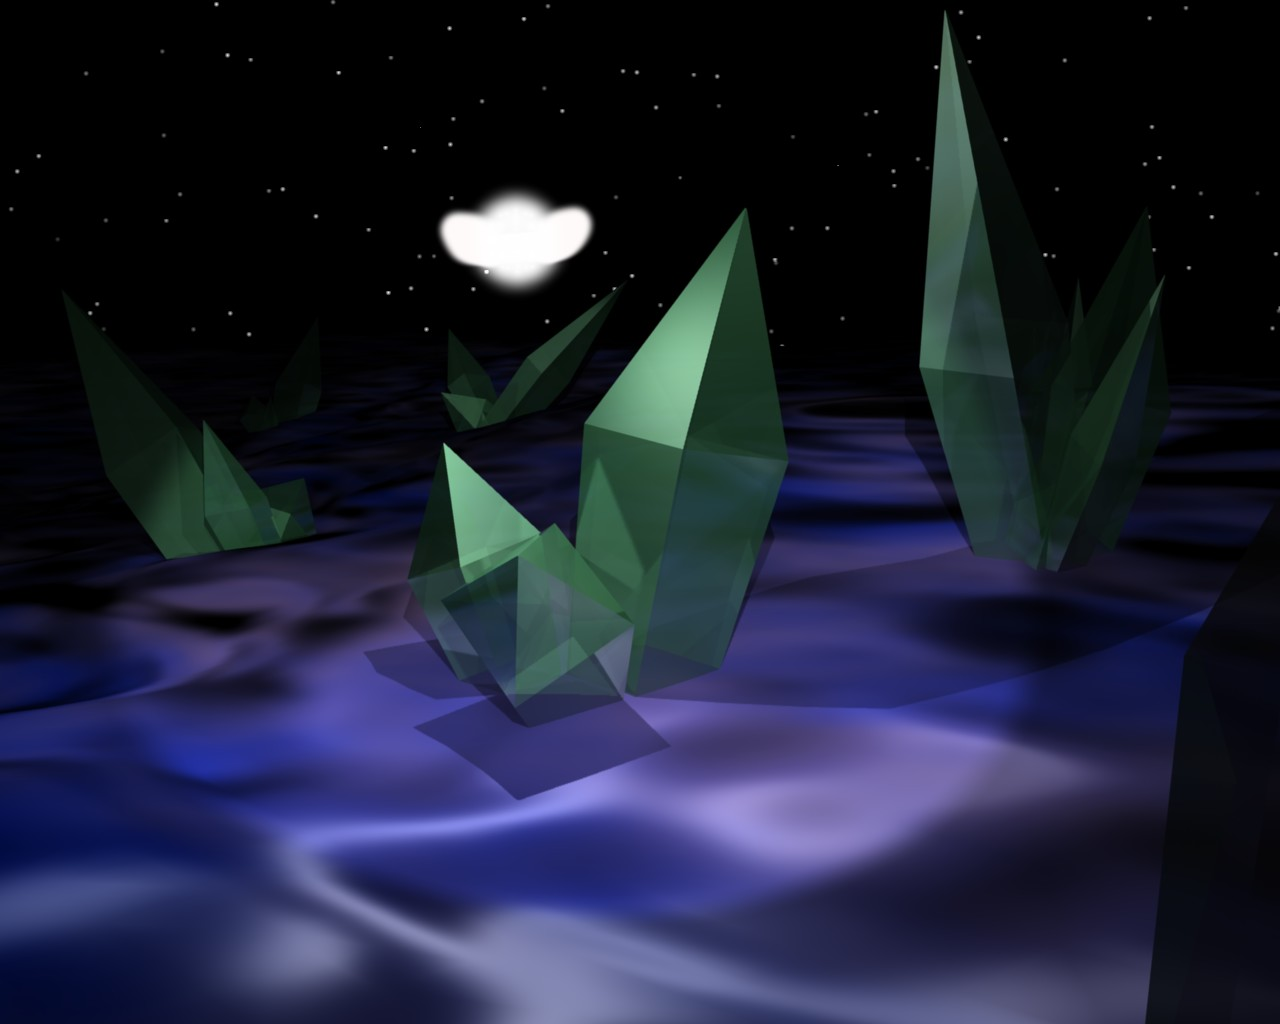 Alien Crystal Field